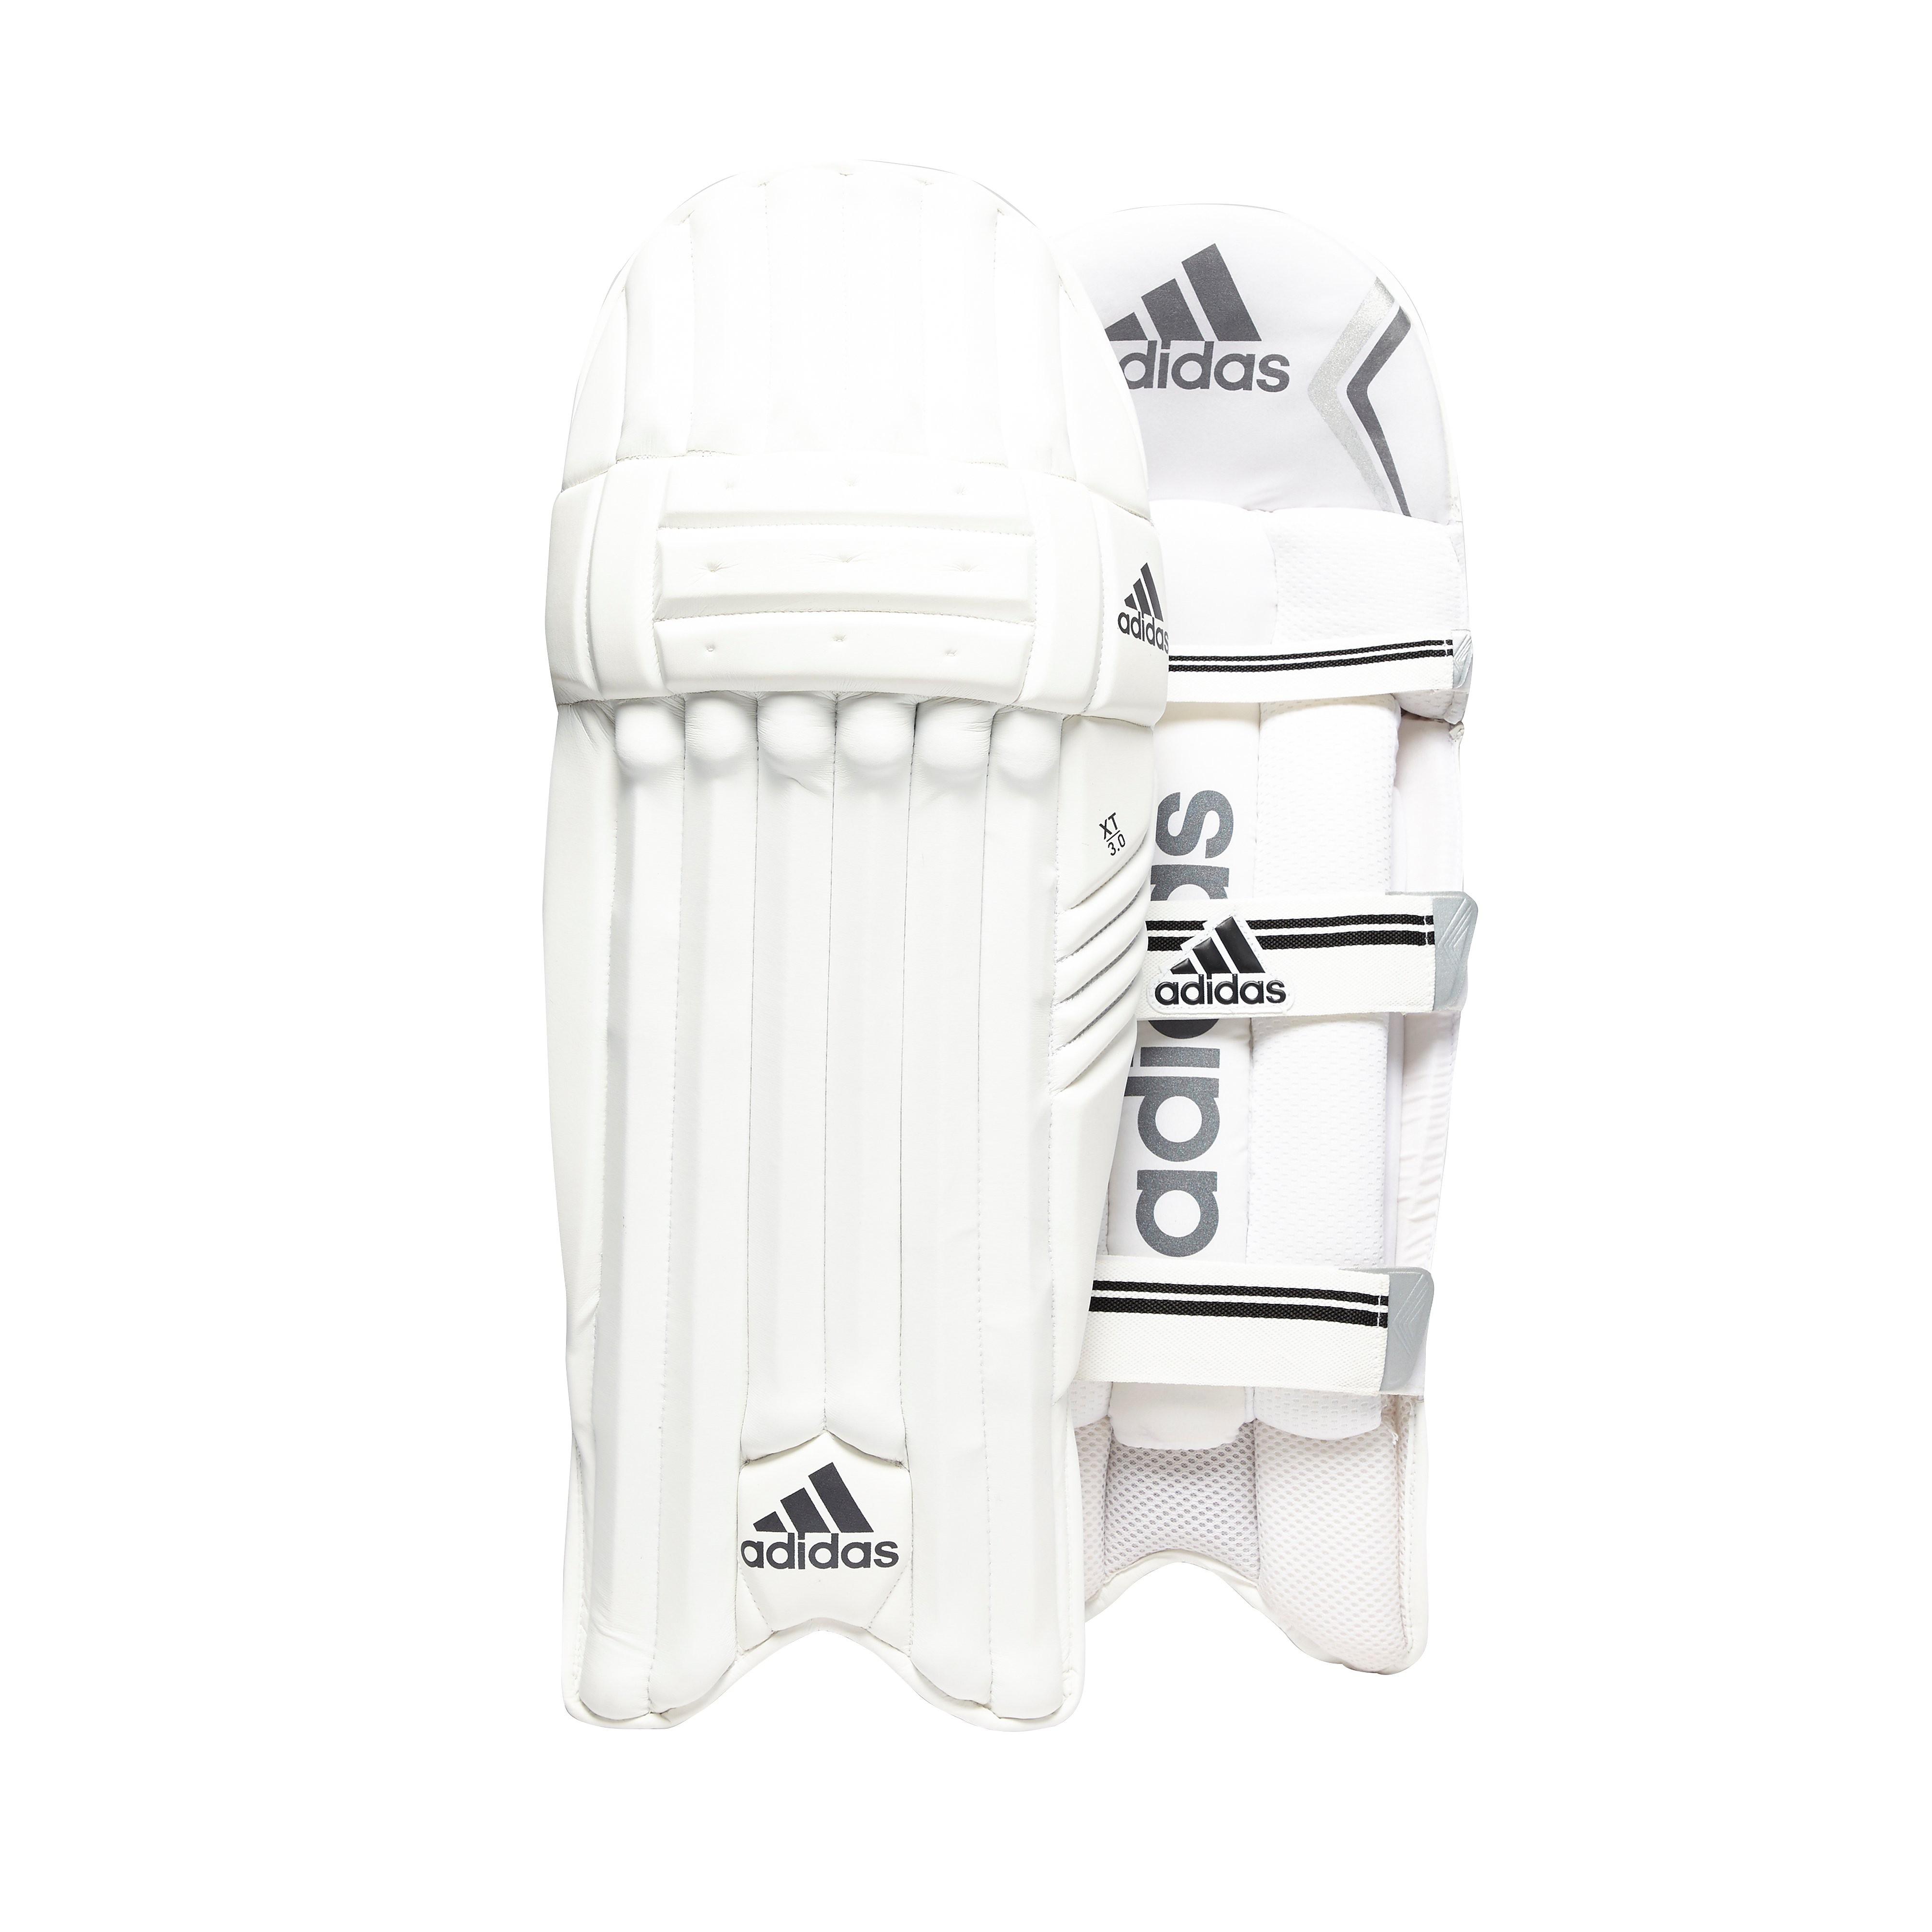 adidas Xt 3.0 Batting Pads